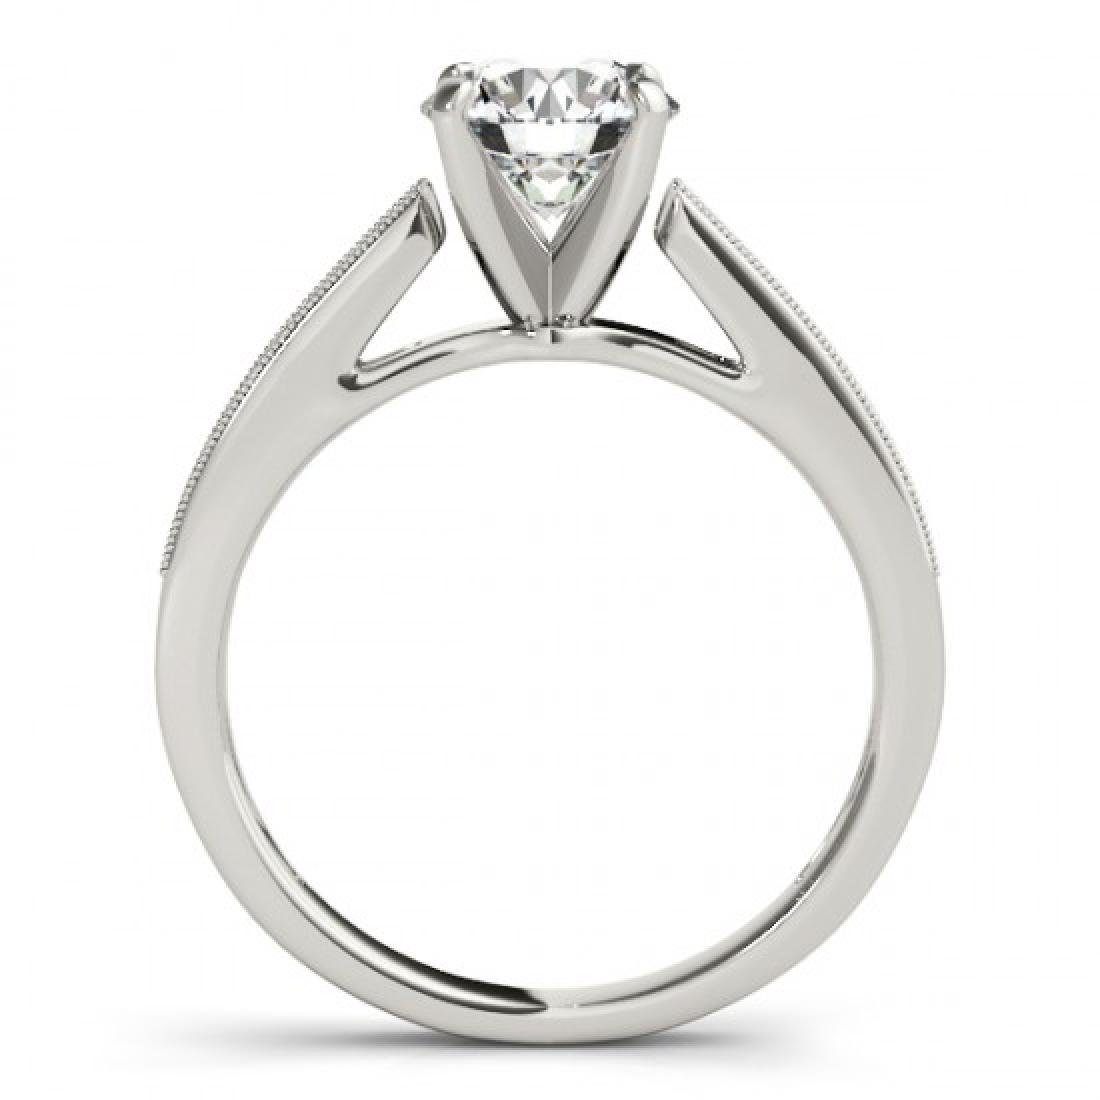 0.4 CTW Certified VS/SI Diamond Solitaire Ring 14K - 2